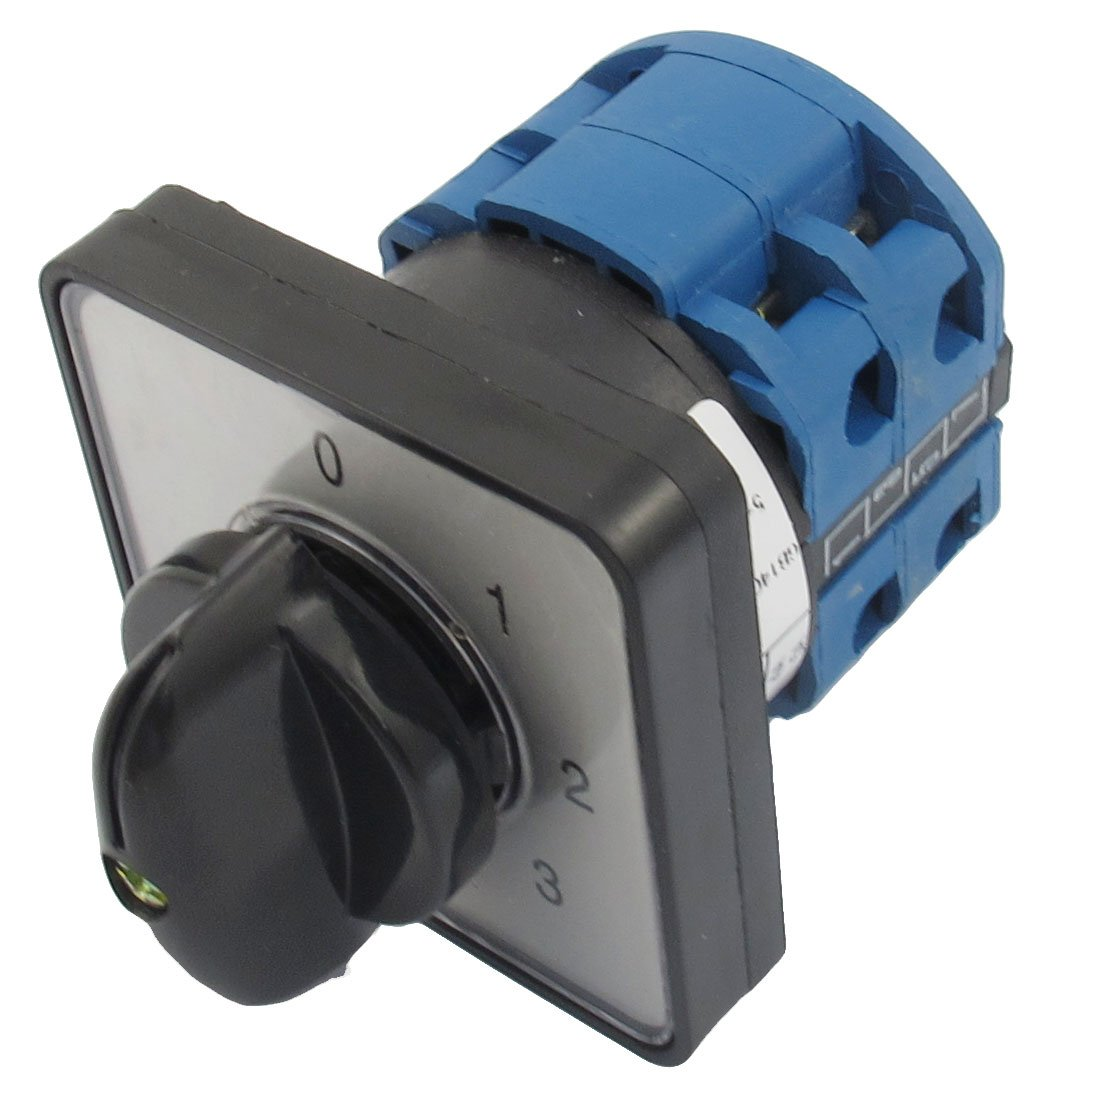 EWS 660V 20A 6 Terminals 4 Positions Rotary Cam Changeover Switch rotary switch ymz12 25 4 changeover cam combination switch 4 poles 8 positions 14 terminals 25a ui 690v sliver point contacts